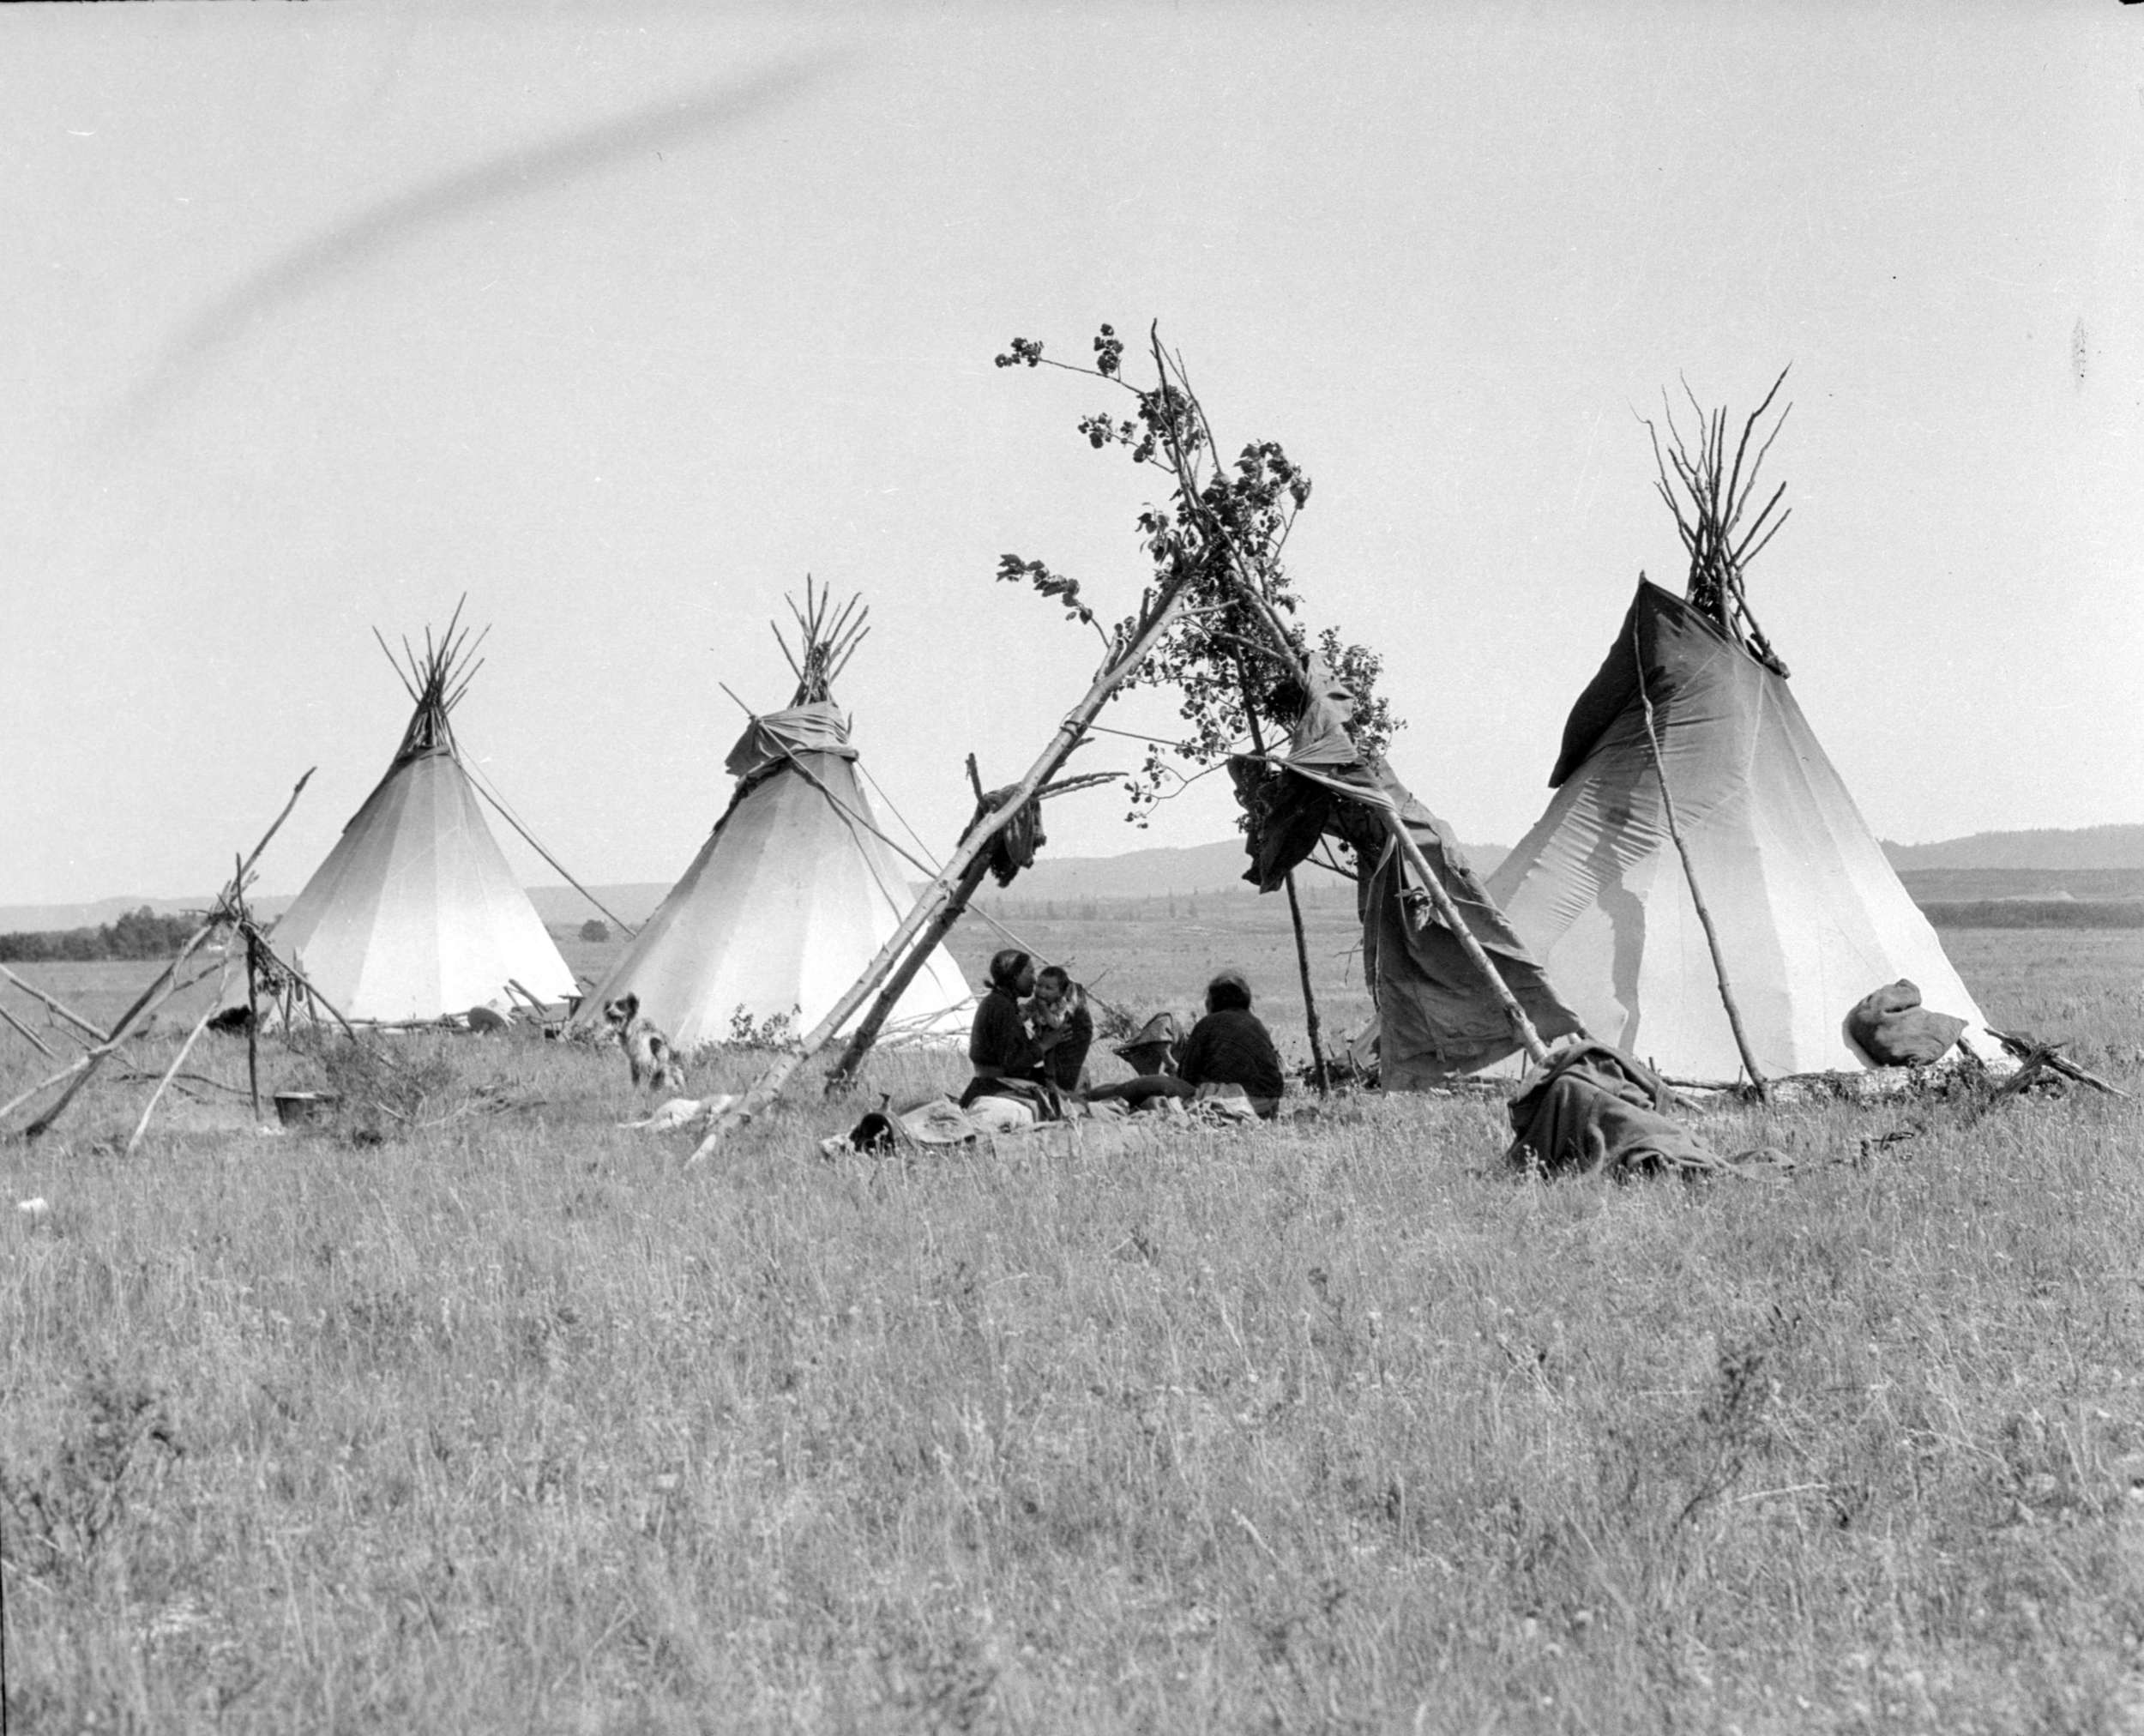 """""""Indian encampment"""" by Alfred Donald Coltman,retrieved from the City of Vancouver Archives."""